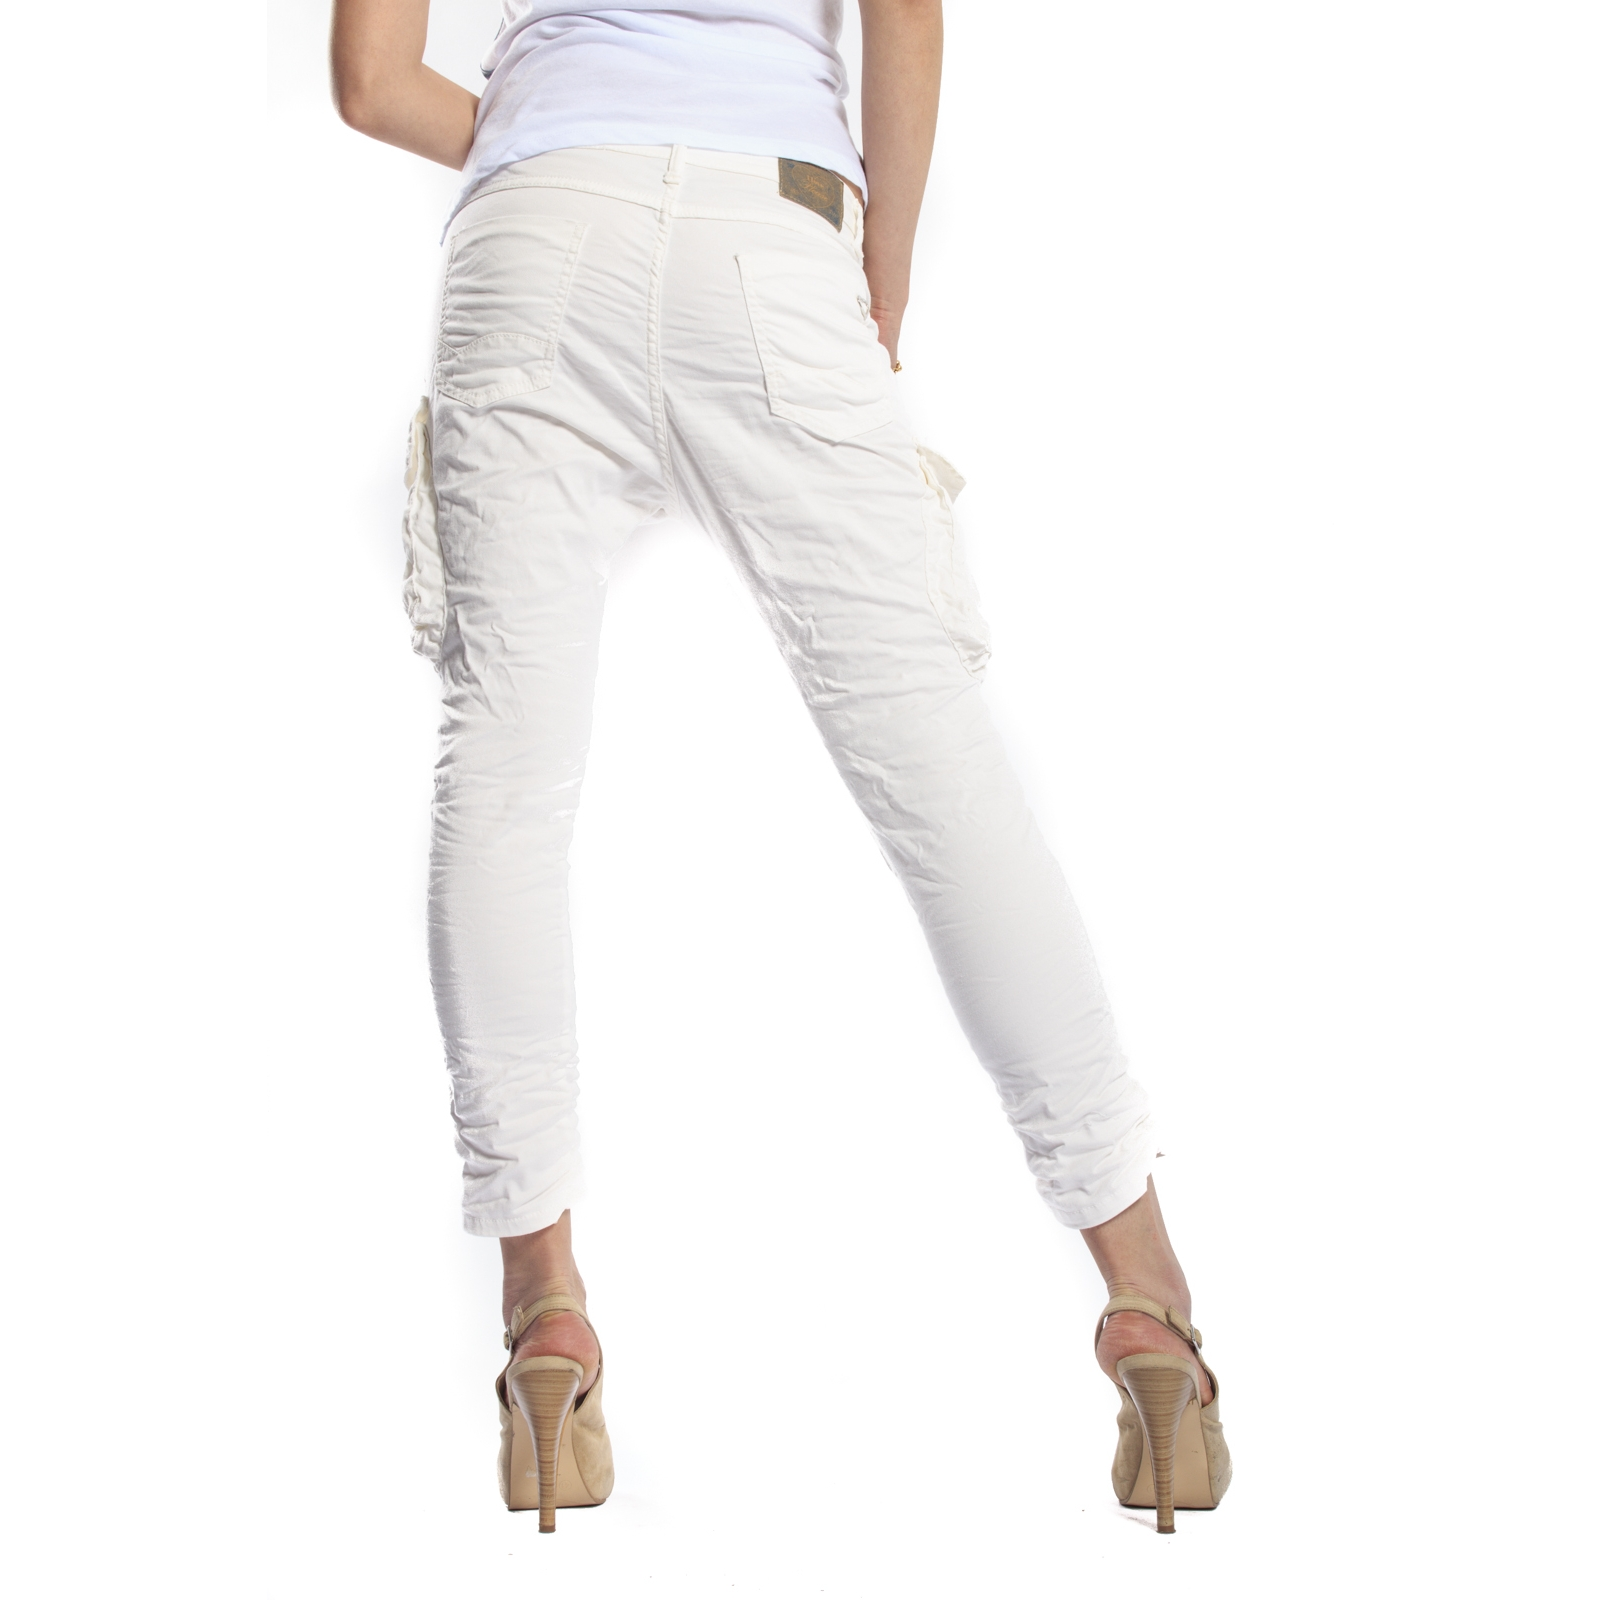 Women's Jeans. Discover designer and brand name women's jeggings, skinny jeans, straight jeans, bootcut jeans and flare jeans for neo-craft.gq, we are tracking trends in colored jeans, high rise denim and special hem details for women!